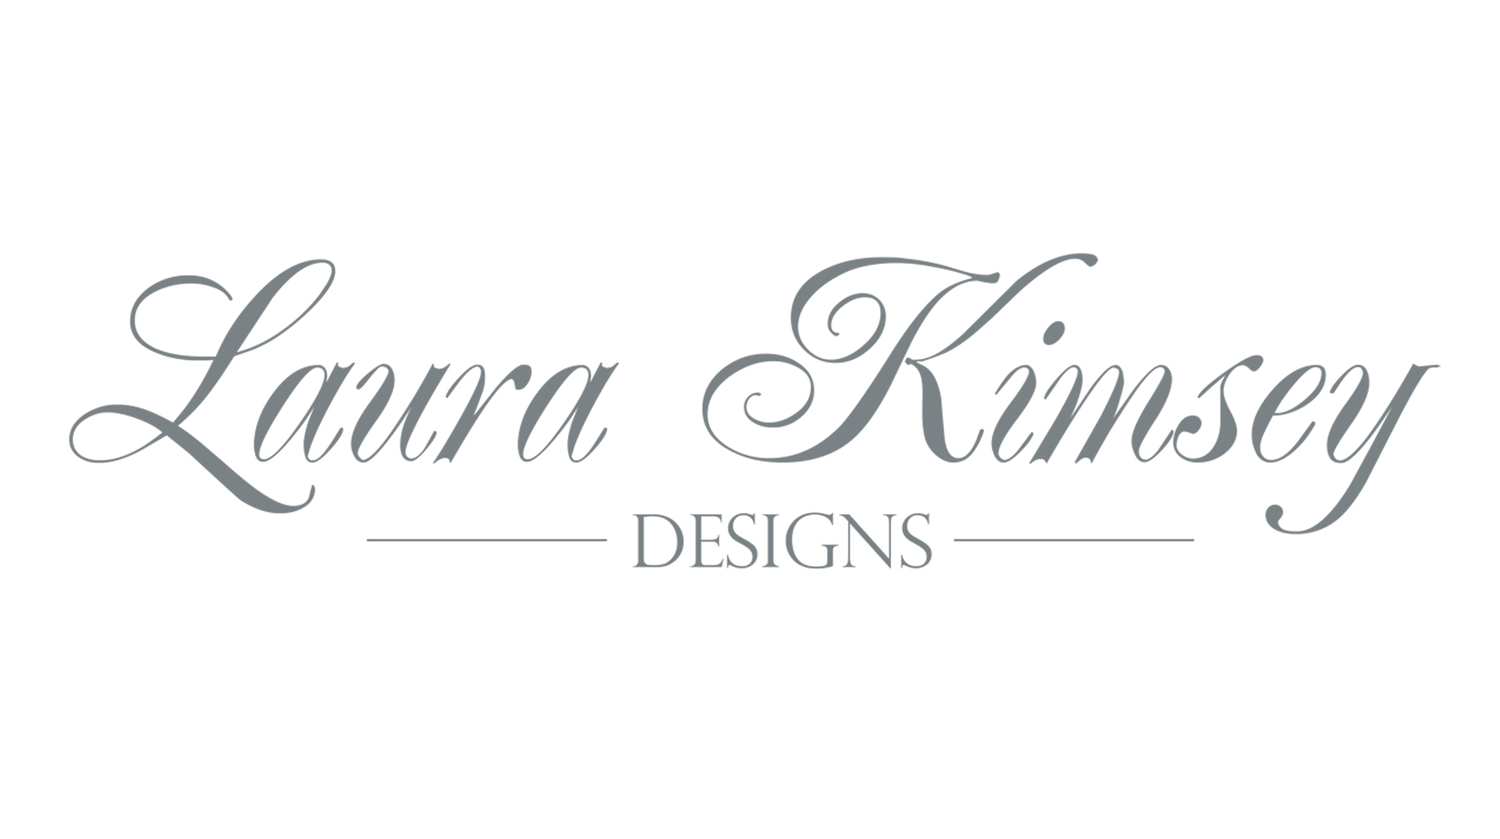 LAURA KIMSEY DESIGNS